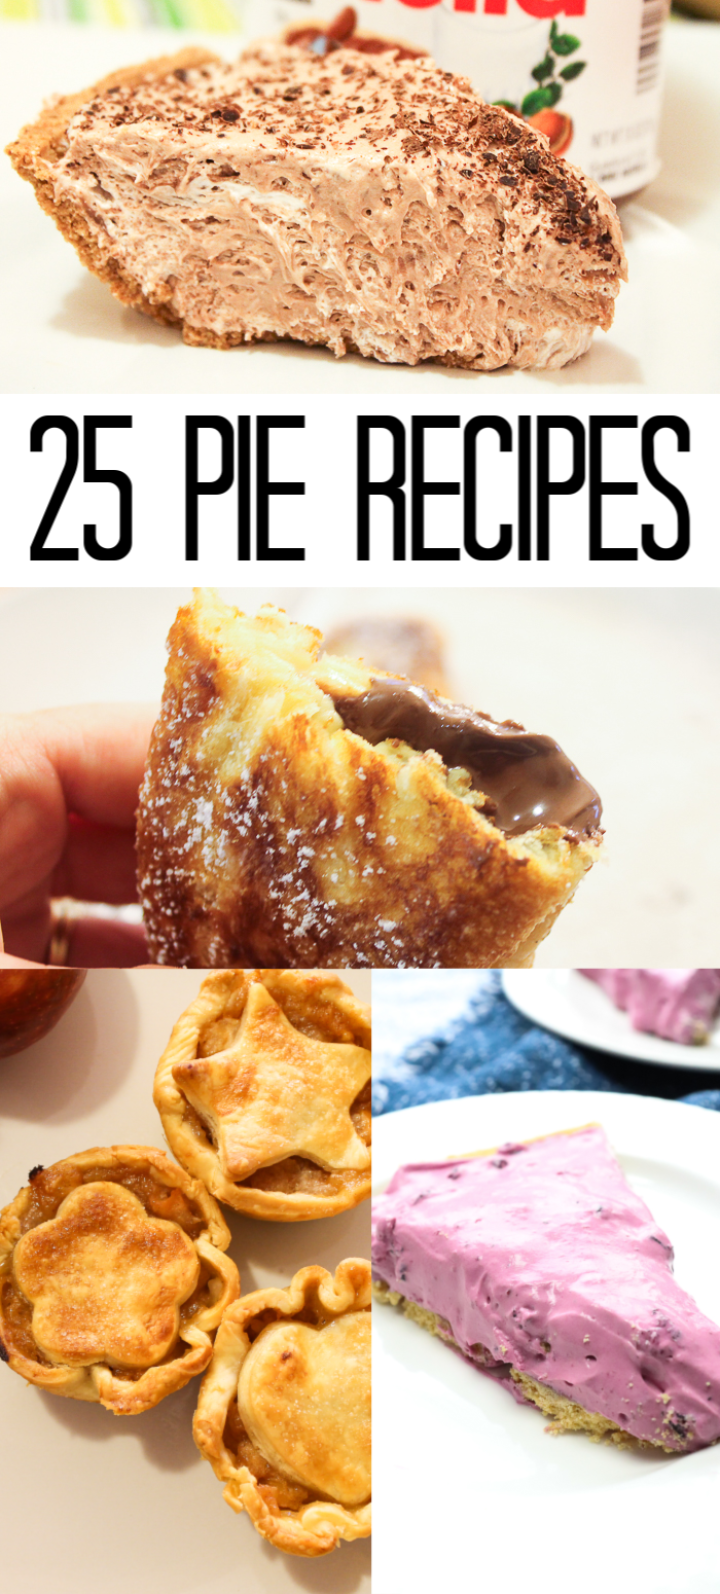 These 25 pie recipes are perfect for any time of the year but especially to serve up at Thanksgiving dinner as the ultimate dessert idea! #dessert #thanksgiving #pie